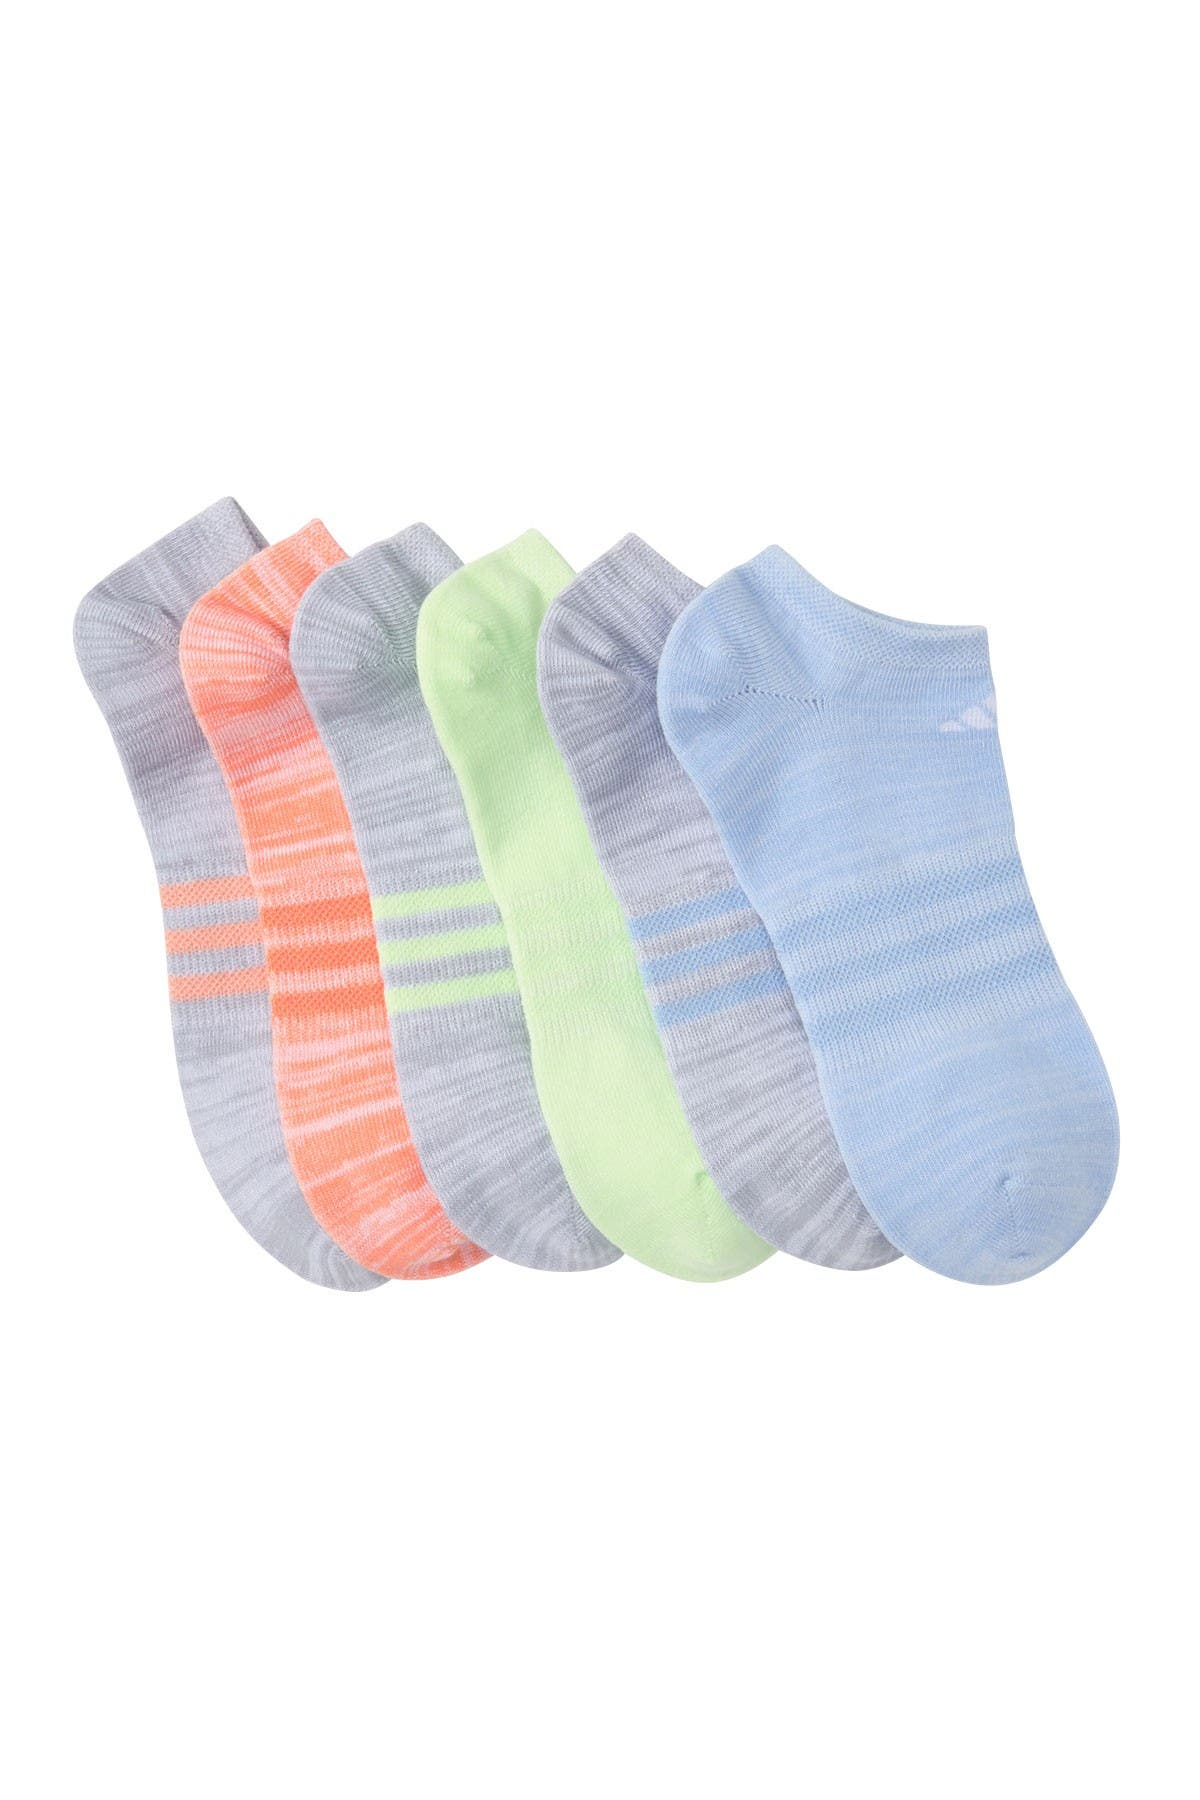 Image of adidas Superlite No-Show Socks - Pack of 6